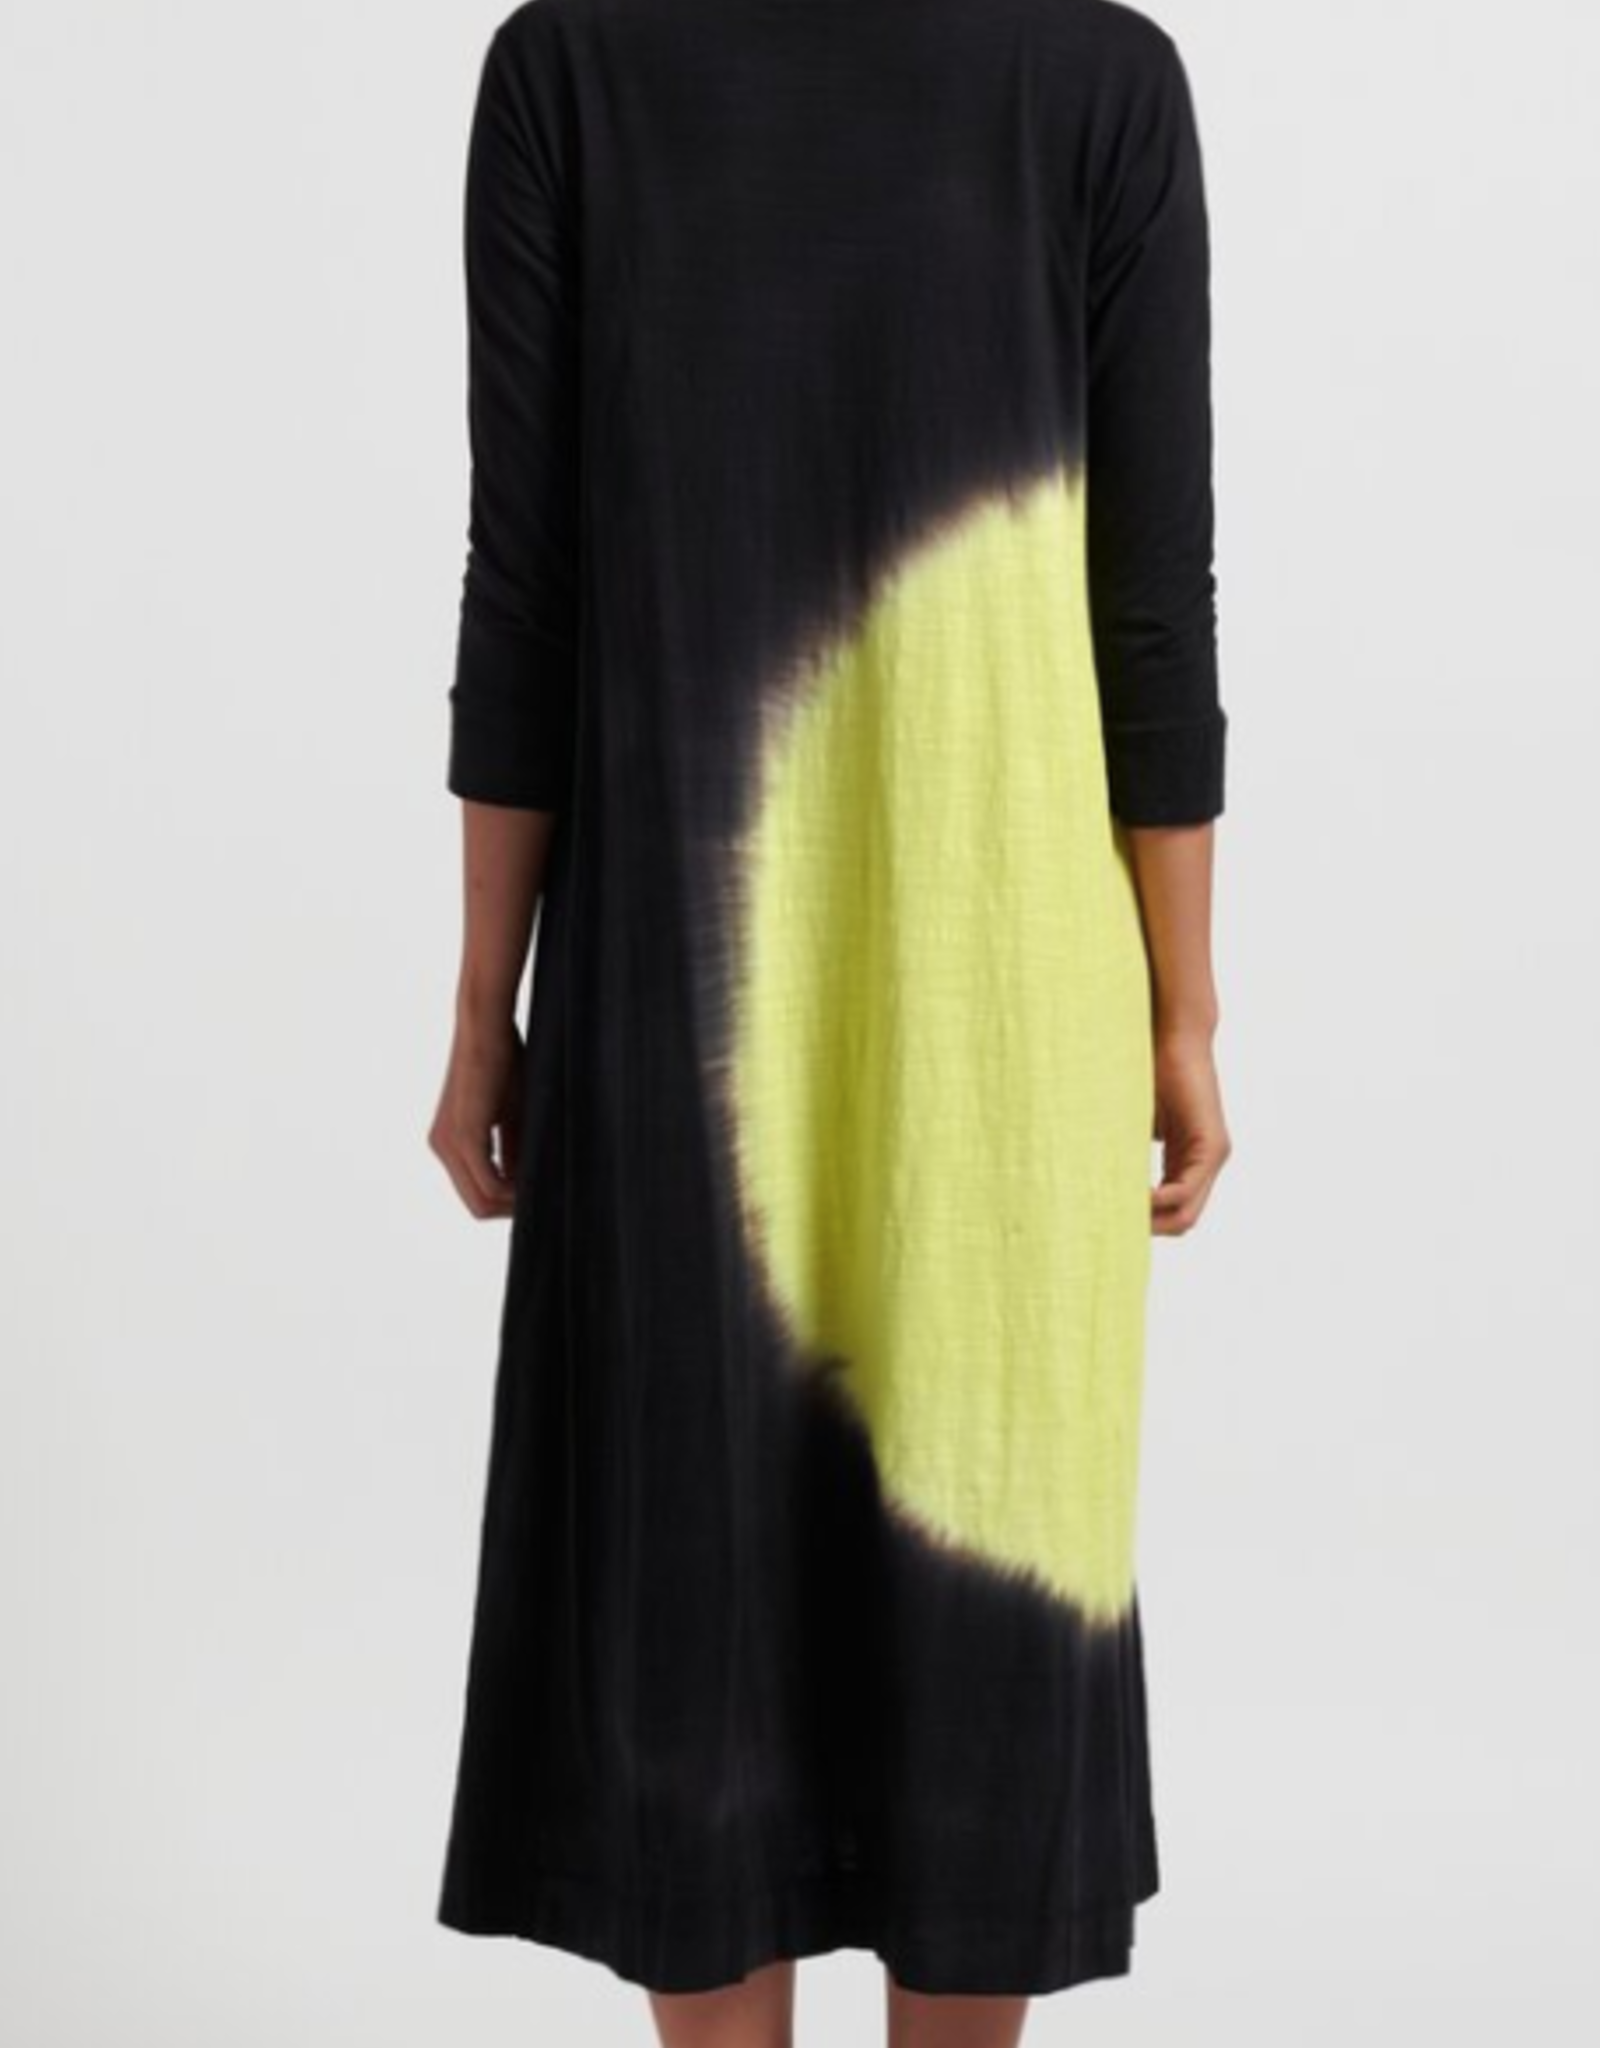 GILDA MIDANI - Pattern Dyed Dress